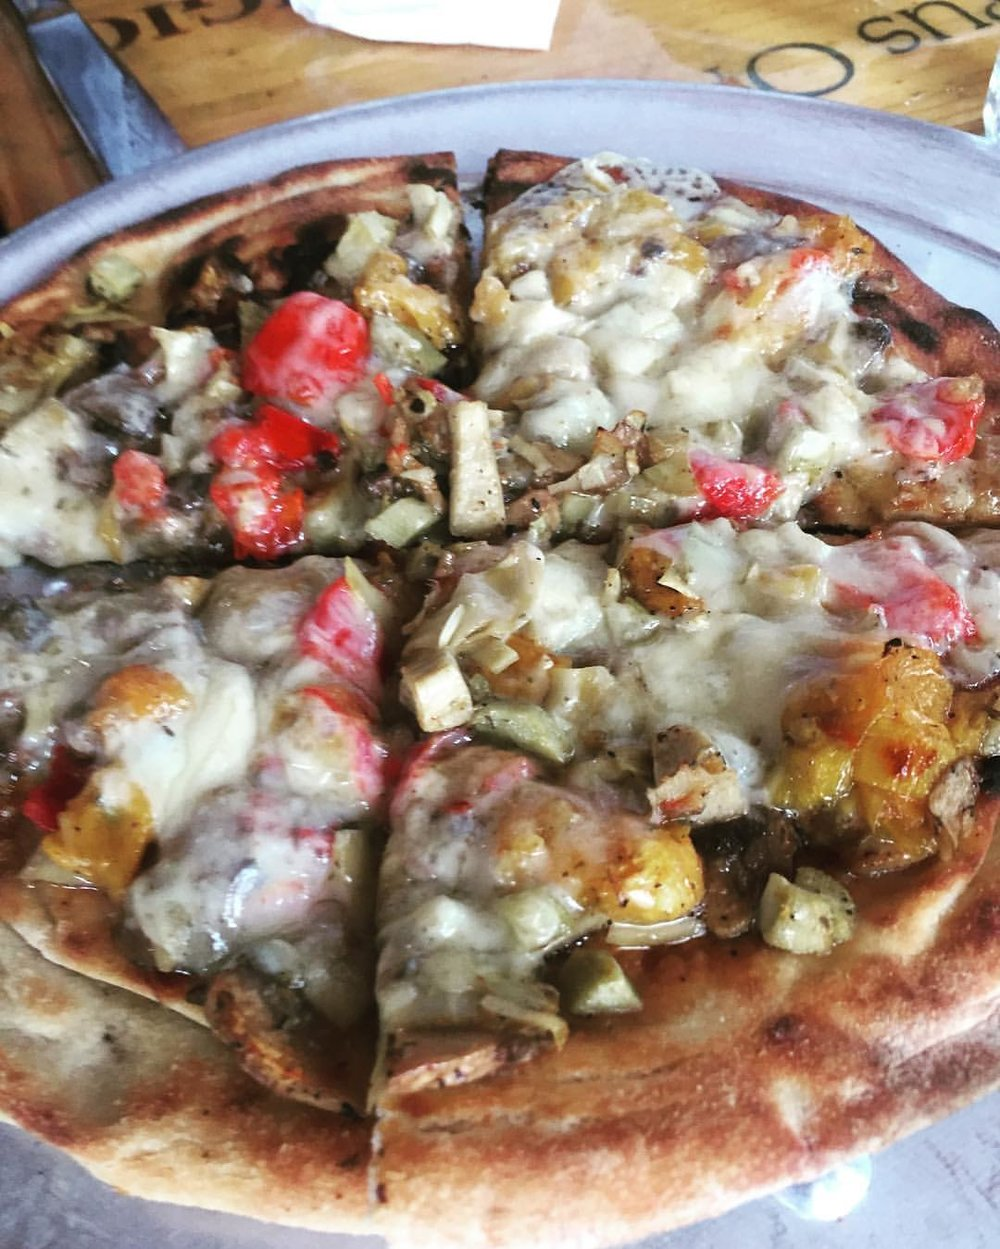 We had some yummy things at Sac's Place today – especially the coal oven veggie pizza: artichokes, mushrooms, roasted tomatoes & fontina cheese. Can't wait for their full brunch debut next Saturday. Thanks @sacsplace for having all these wonderful Astoria/Queens friends for a tasting! (at Sac's Place Restaurant)